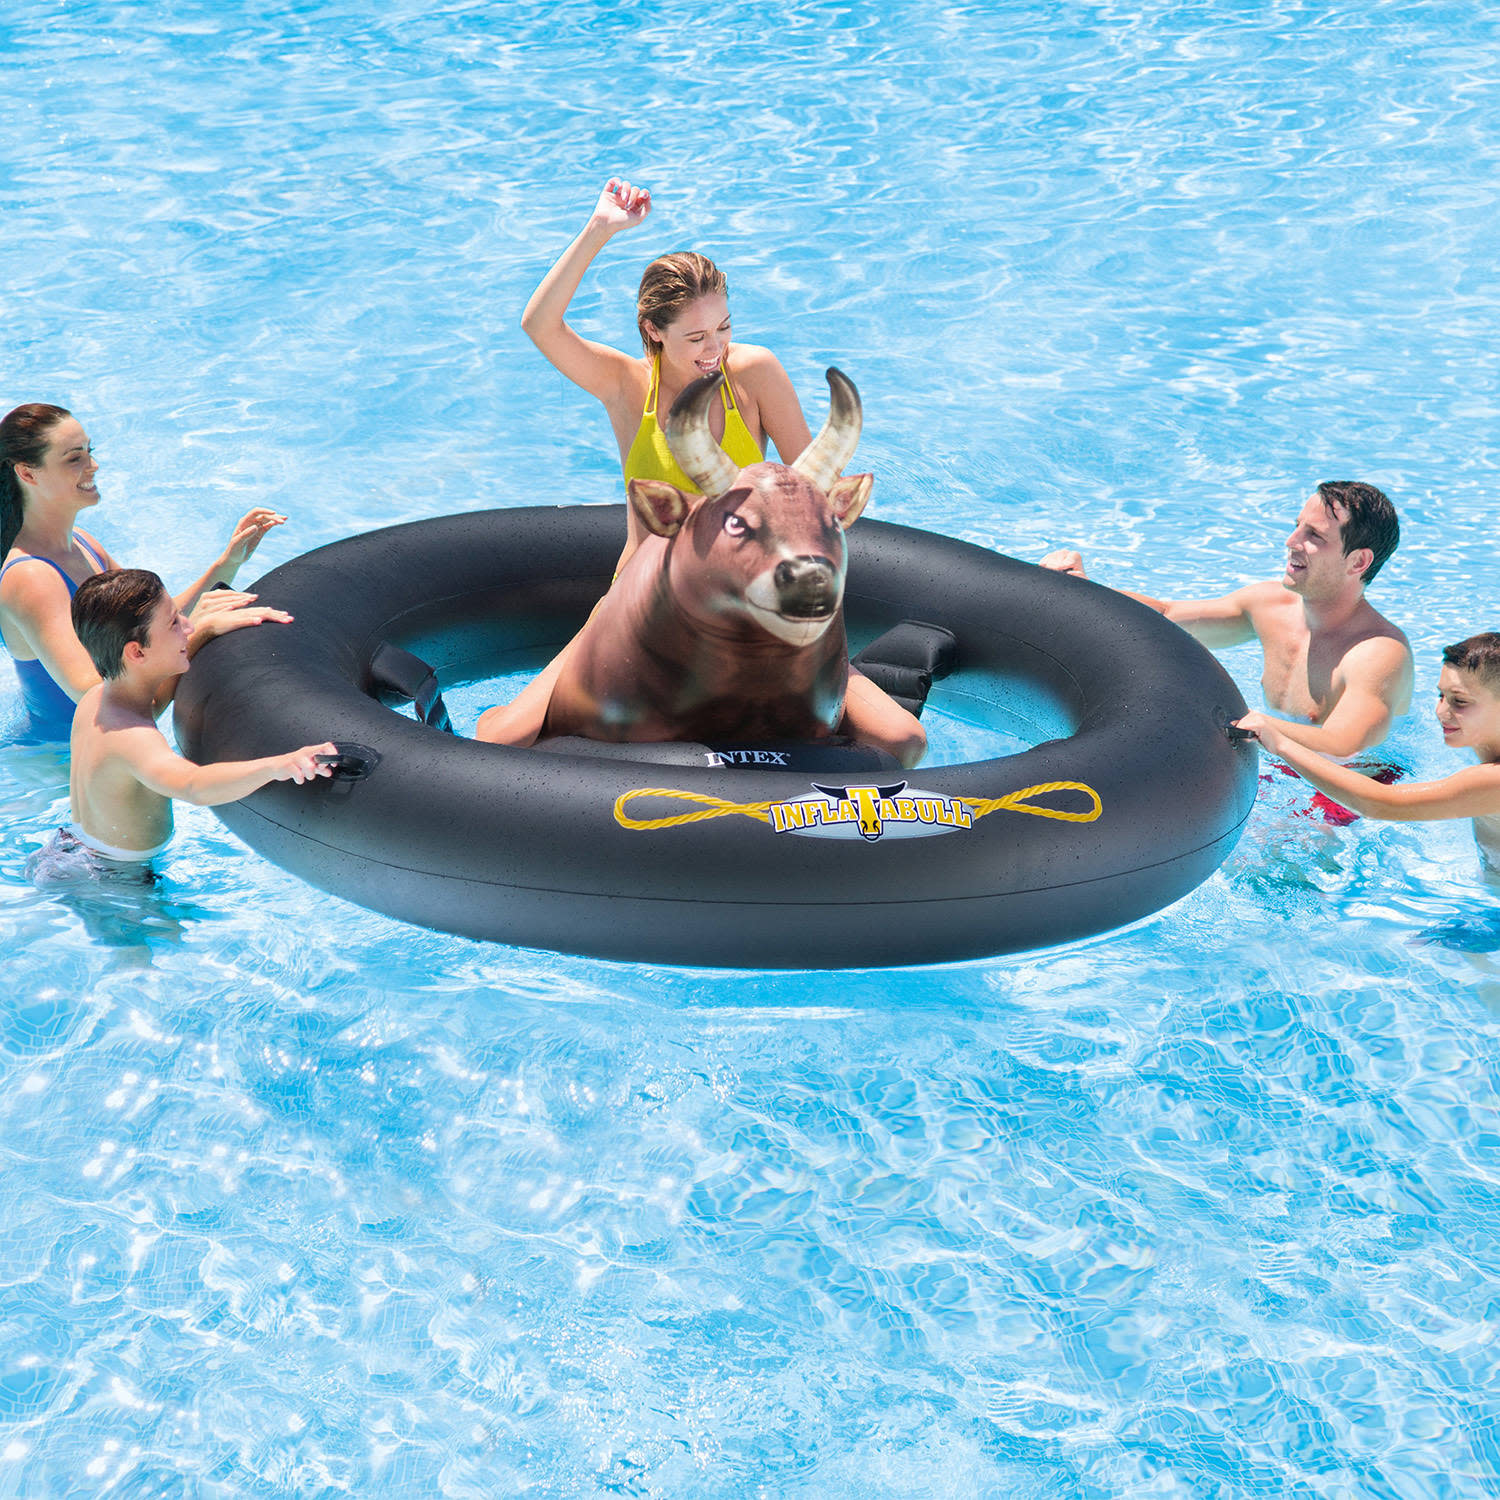 INTEX Giant Inflatabull Fun Bull Riding Inflatable Swimming Pool